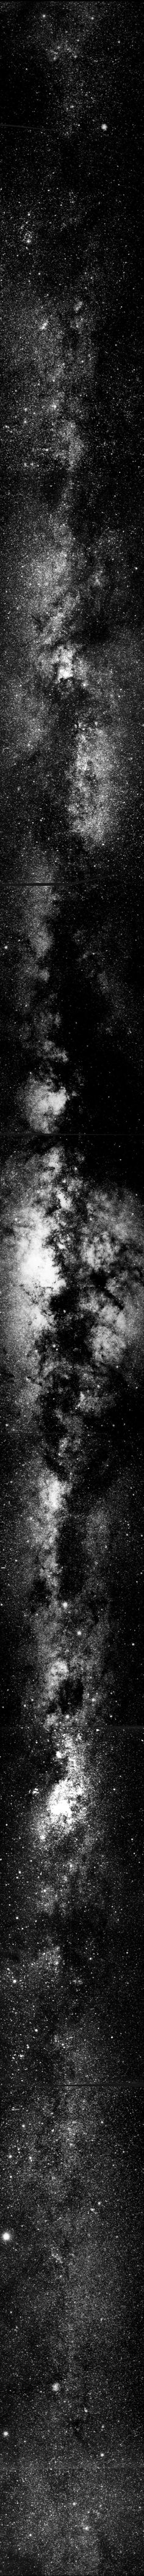 The Milky Way Galaxy - every dot is a Sun. via the Two Micron All Sky Survey using, in part, the Very Large Telescope (@sha chong chong chong Hwang) in the Atacama Desert in Chile.